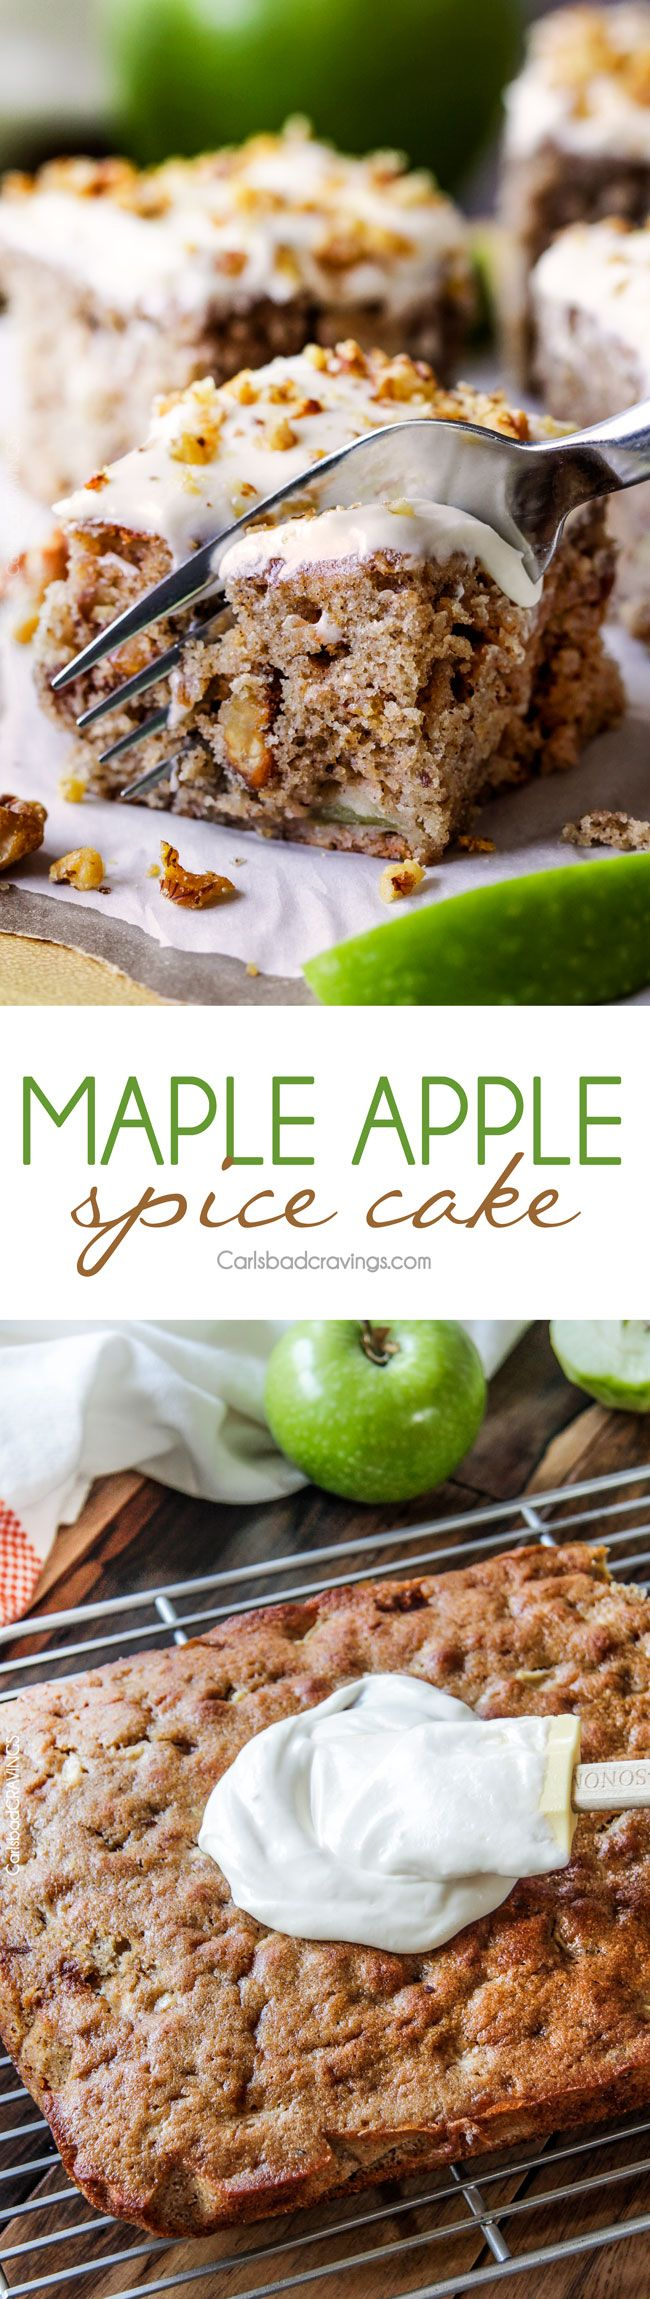 Super moist Maple Apple Spice Cake infused with sweet maple, bursting with Fall spices, walnuts (optional) and smothered in silky cream cheese frosting. Everyone loves this cake! via @carlsbadcraving